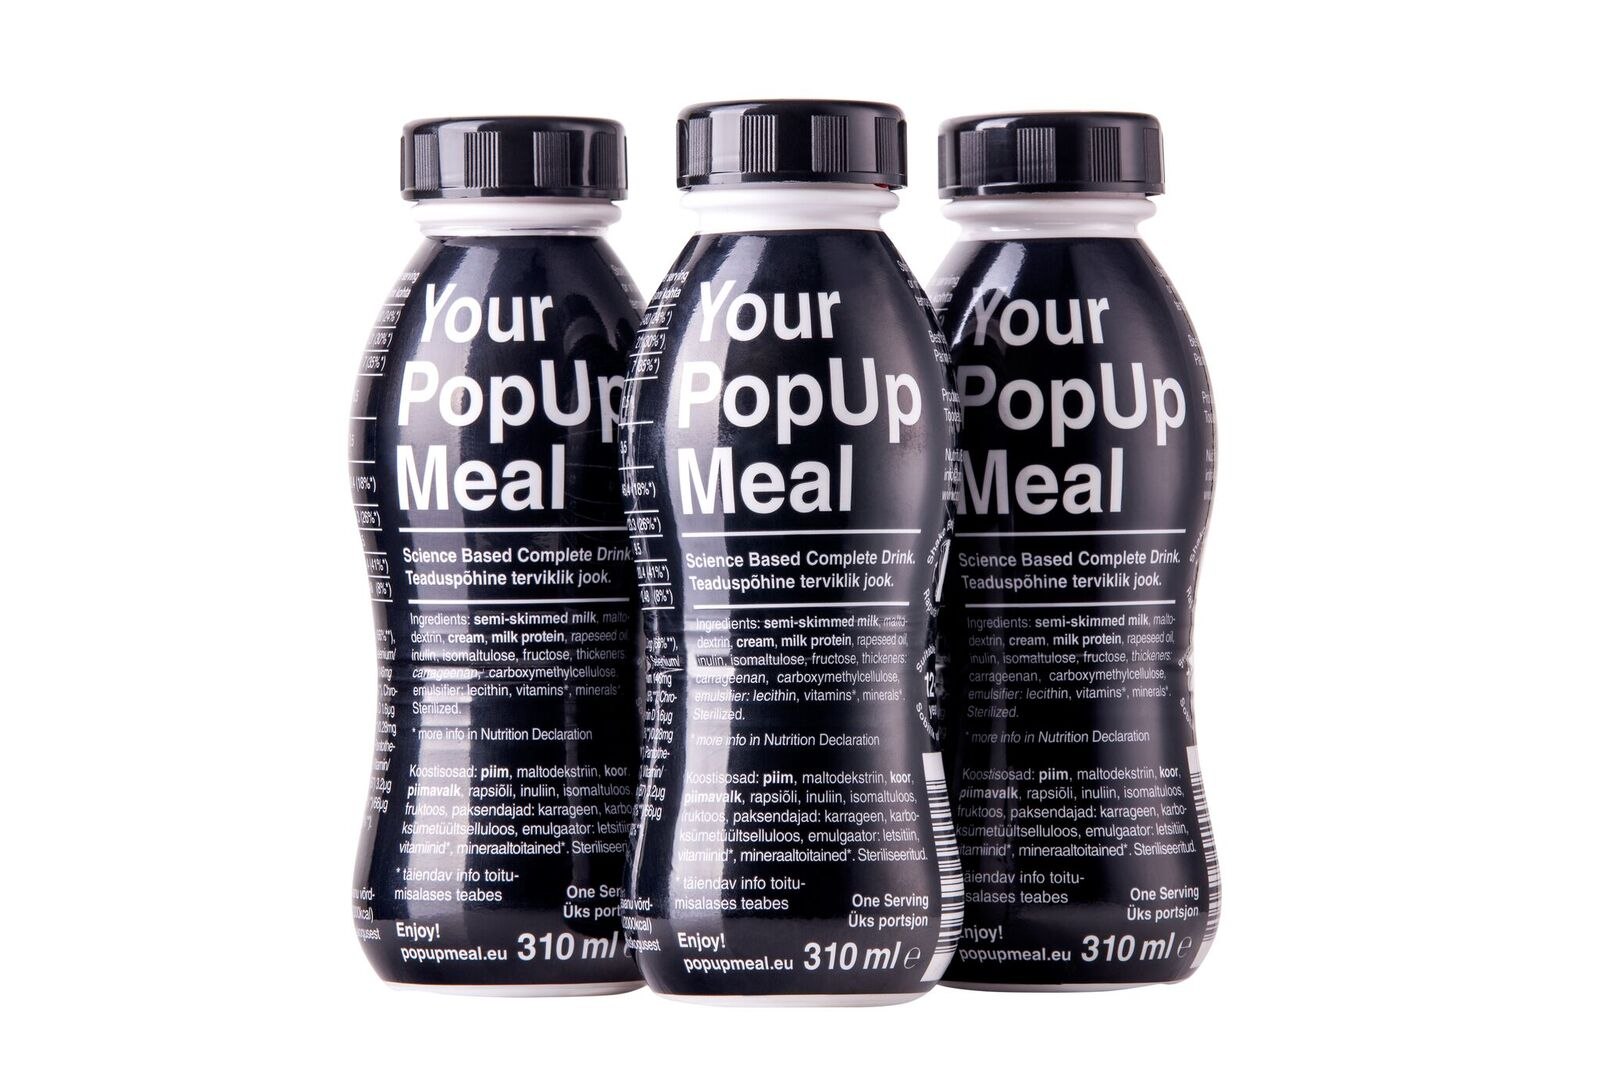 Pop Up Meal – A Smart Ready-To-Drink Meal